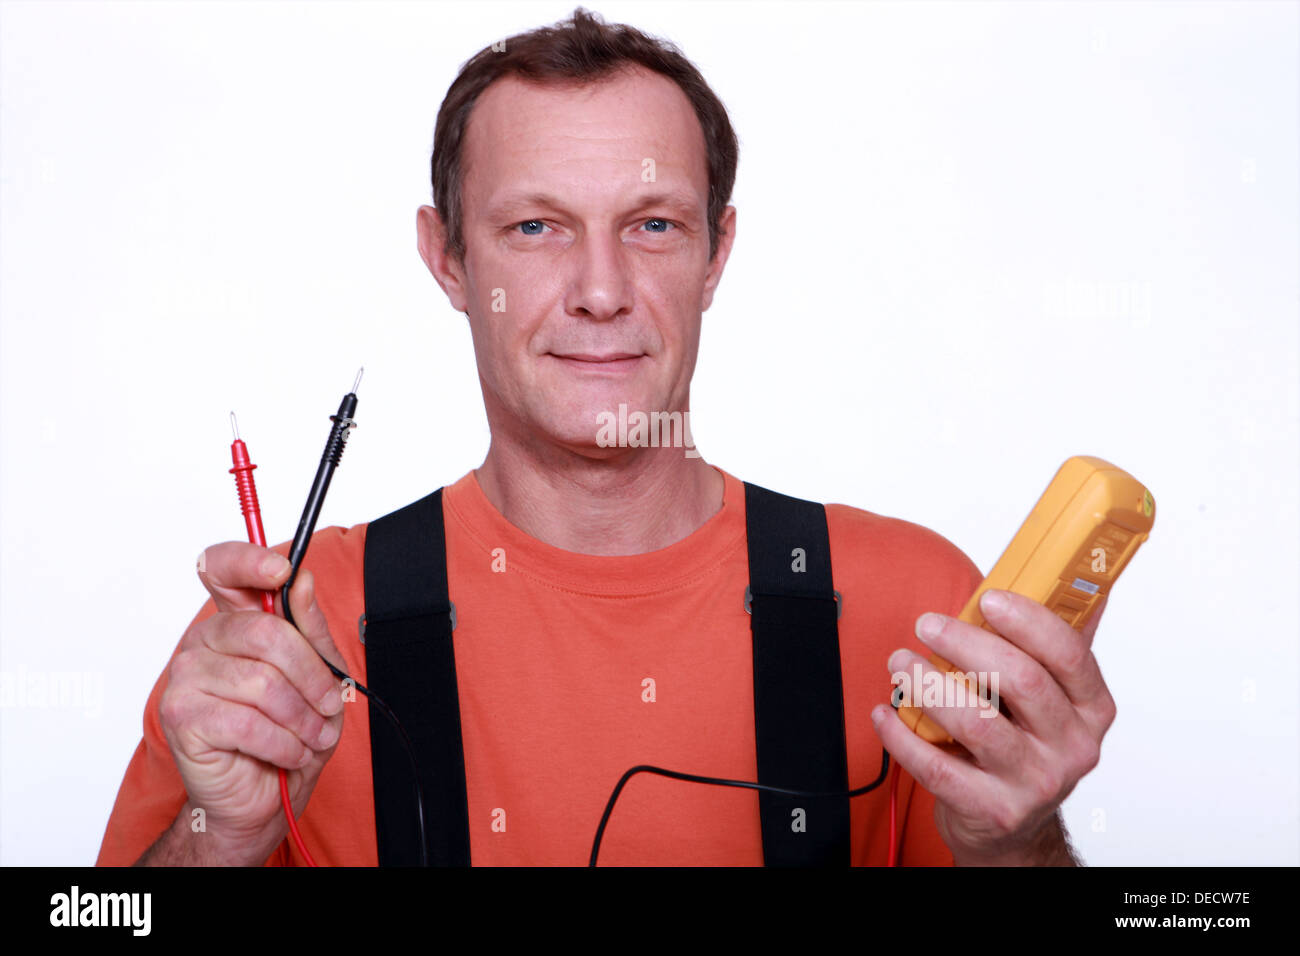 Electrician with a voltmeter - Stock Image